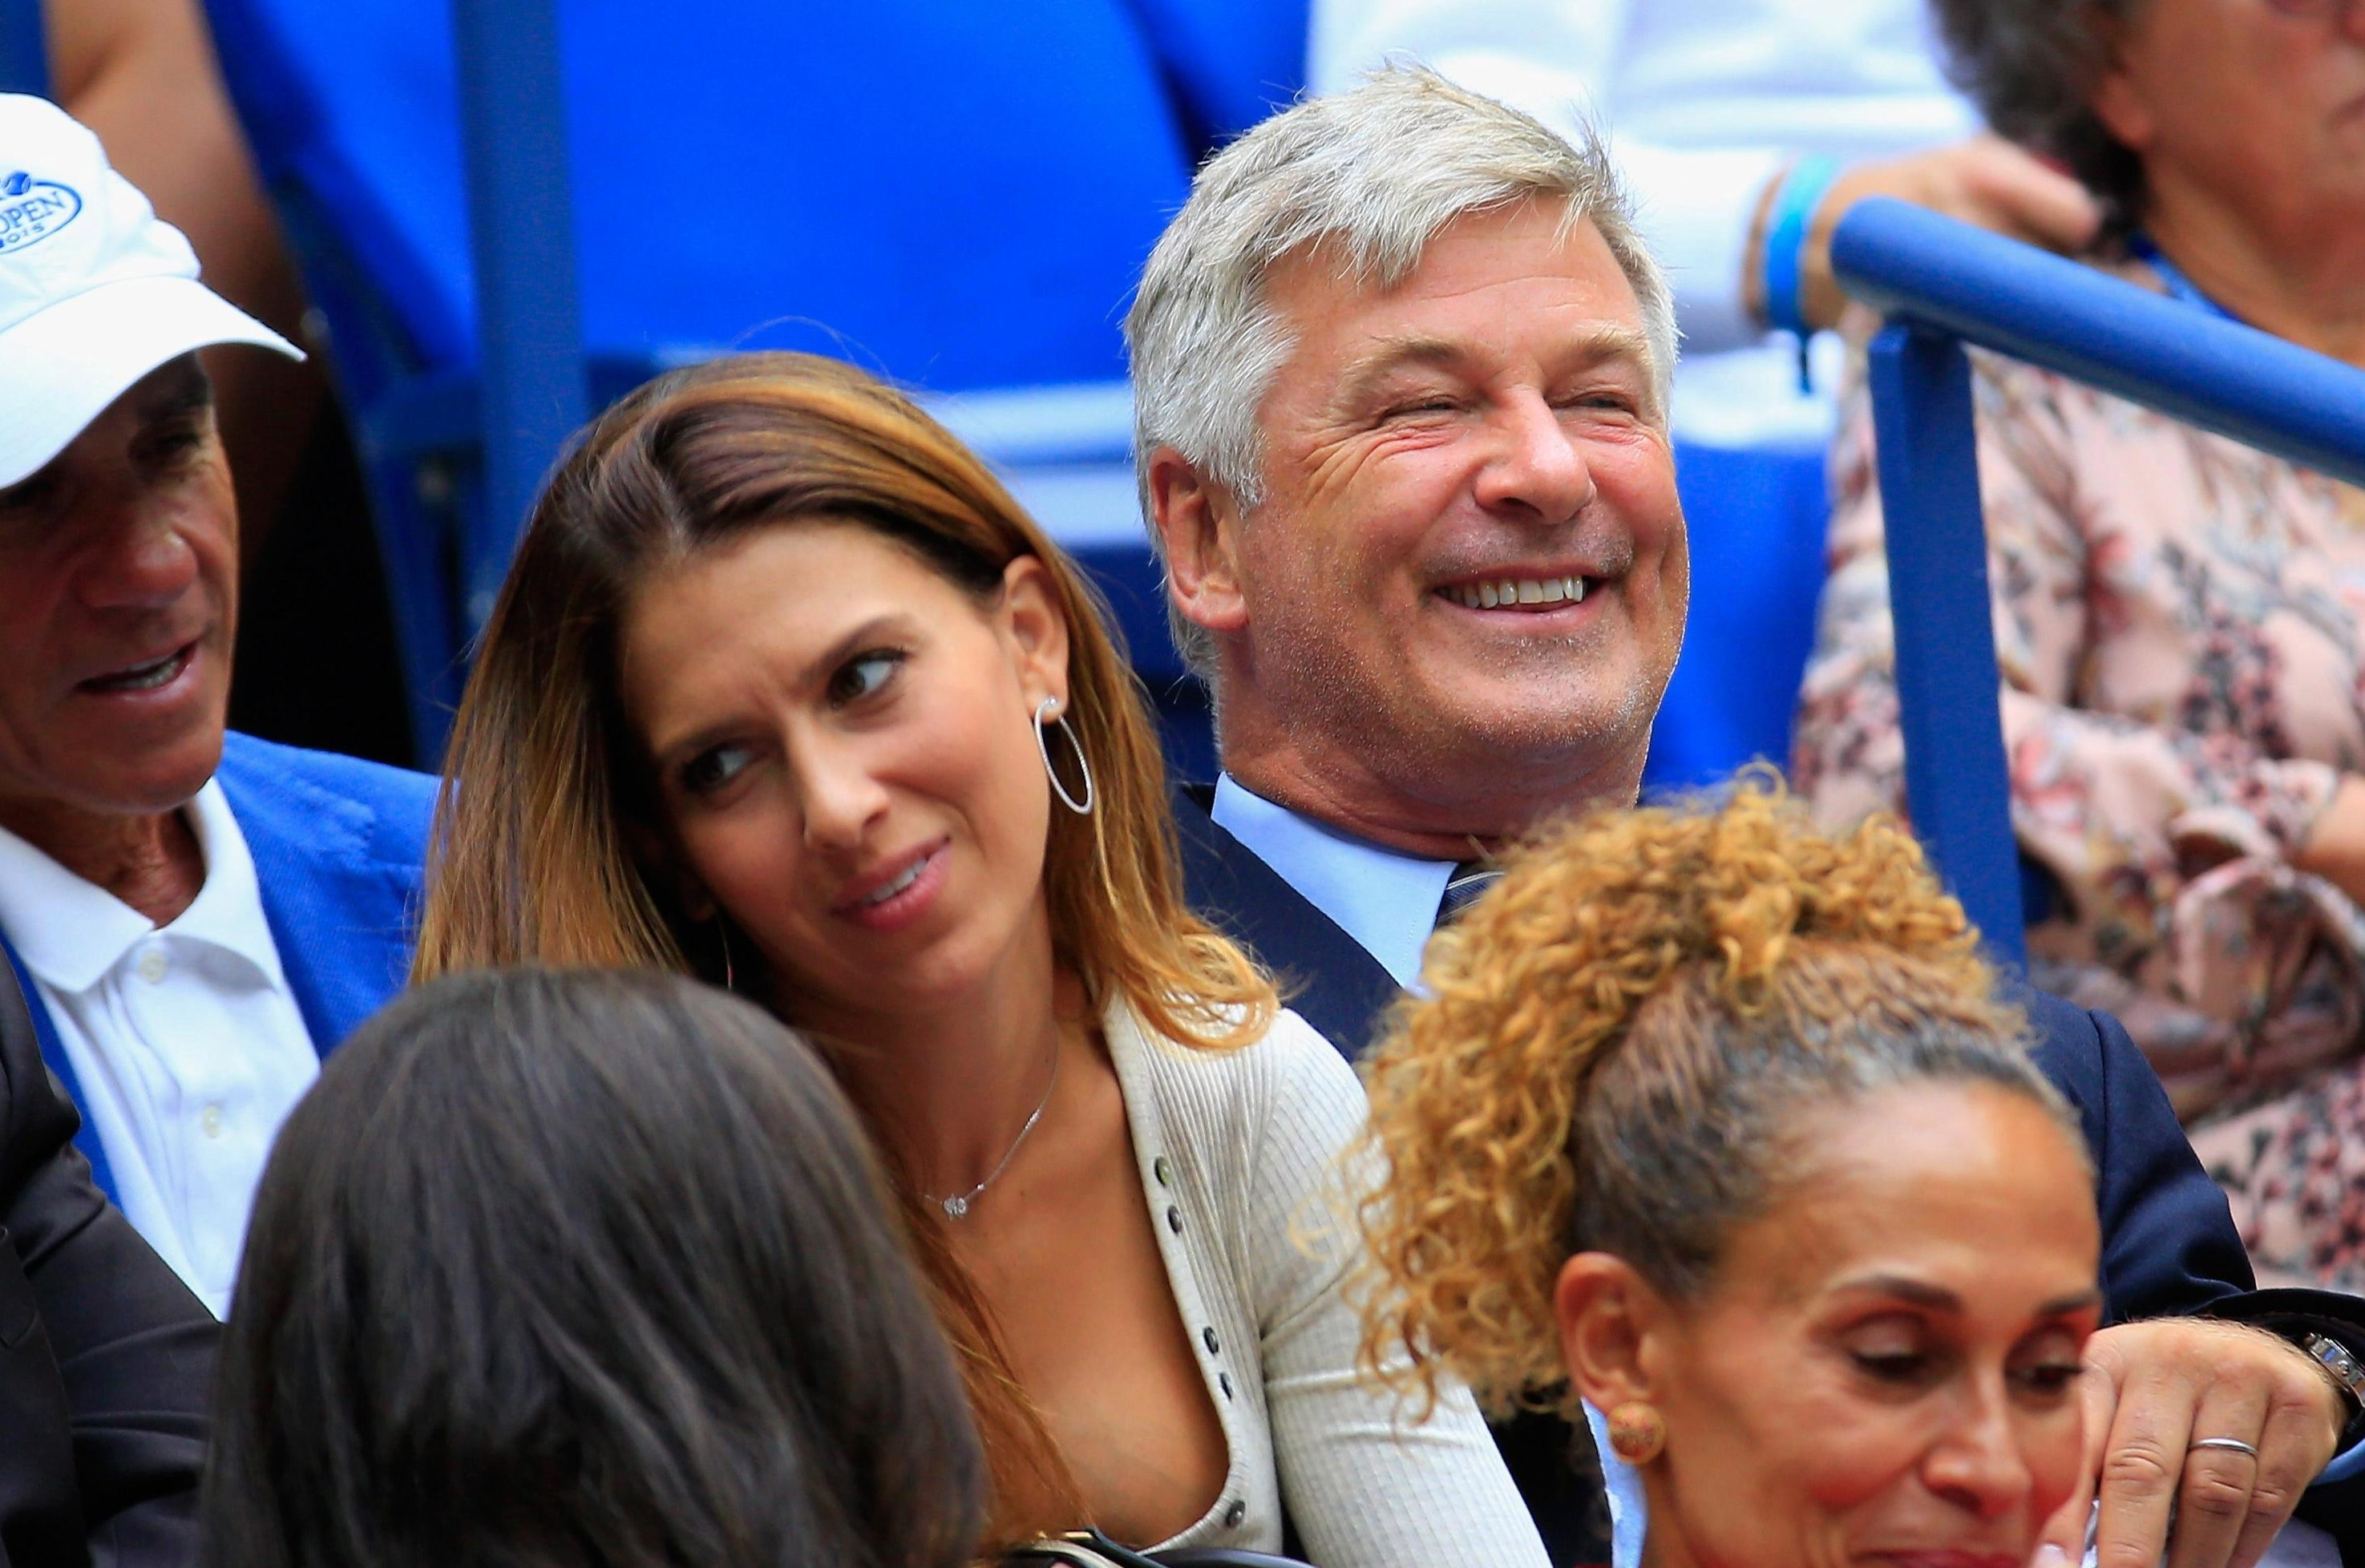 Alec Baldwin was seen in the crowd - expecting a five-set thriller but it was not to be